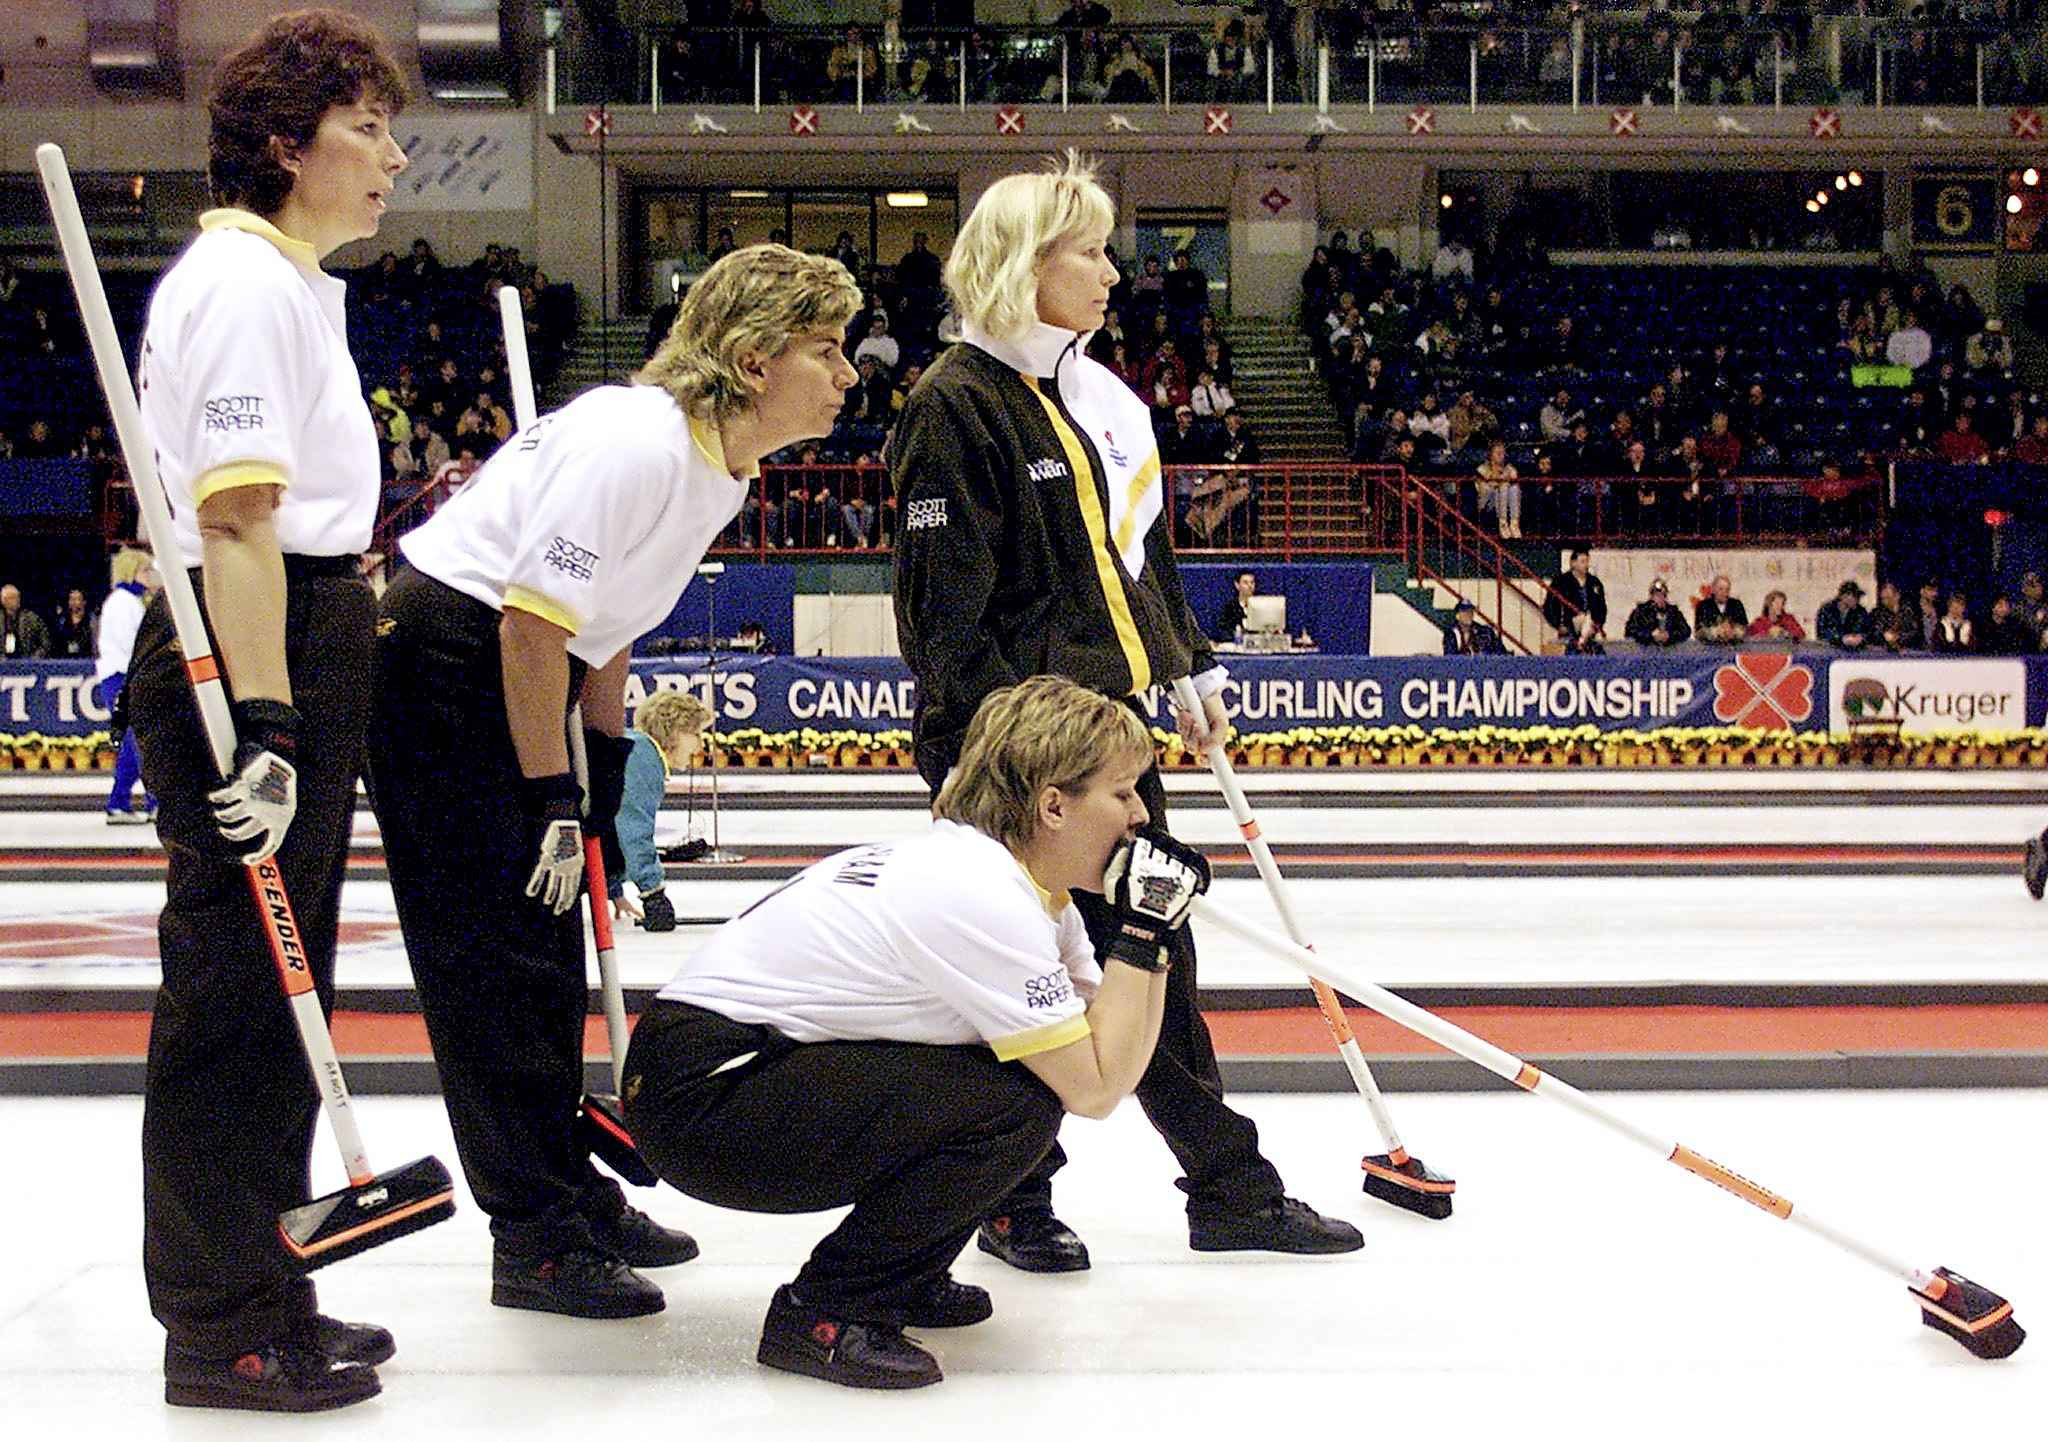 In Charlottetown in February 1999,  Janet Arnott (left) was lead of the Manitoba rink  that included Debbie Jones-Walker (second), Connie Lalibertie (skip) and Cathy Overton-Clapham (third, crouching) at the Scott Tournament of Hearts.